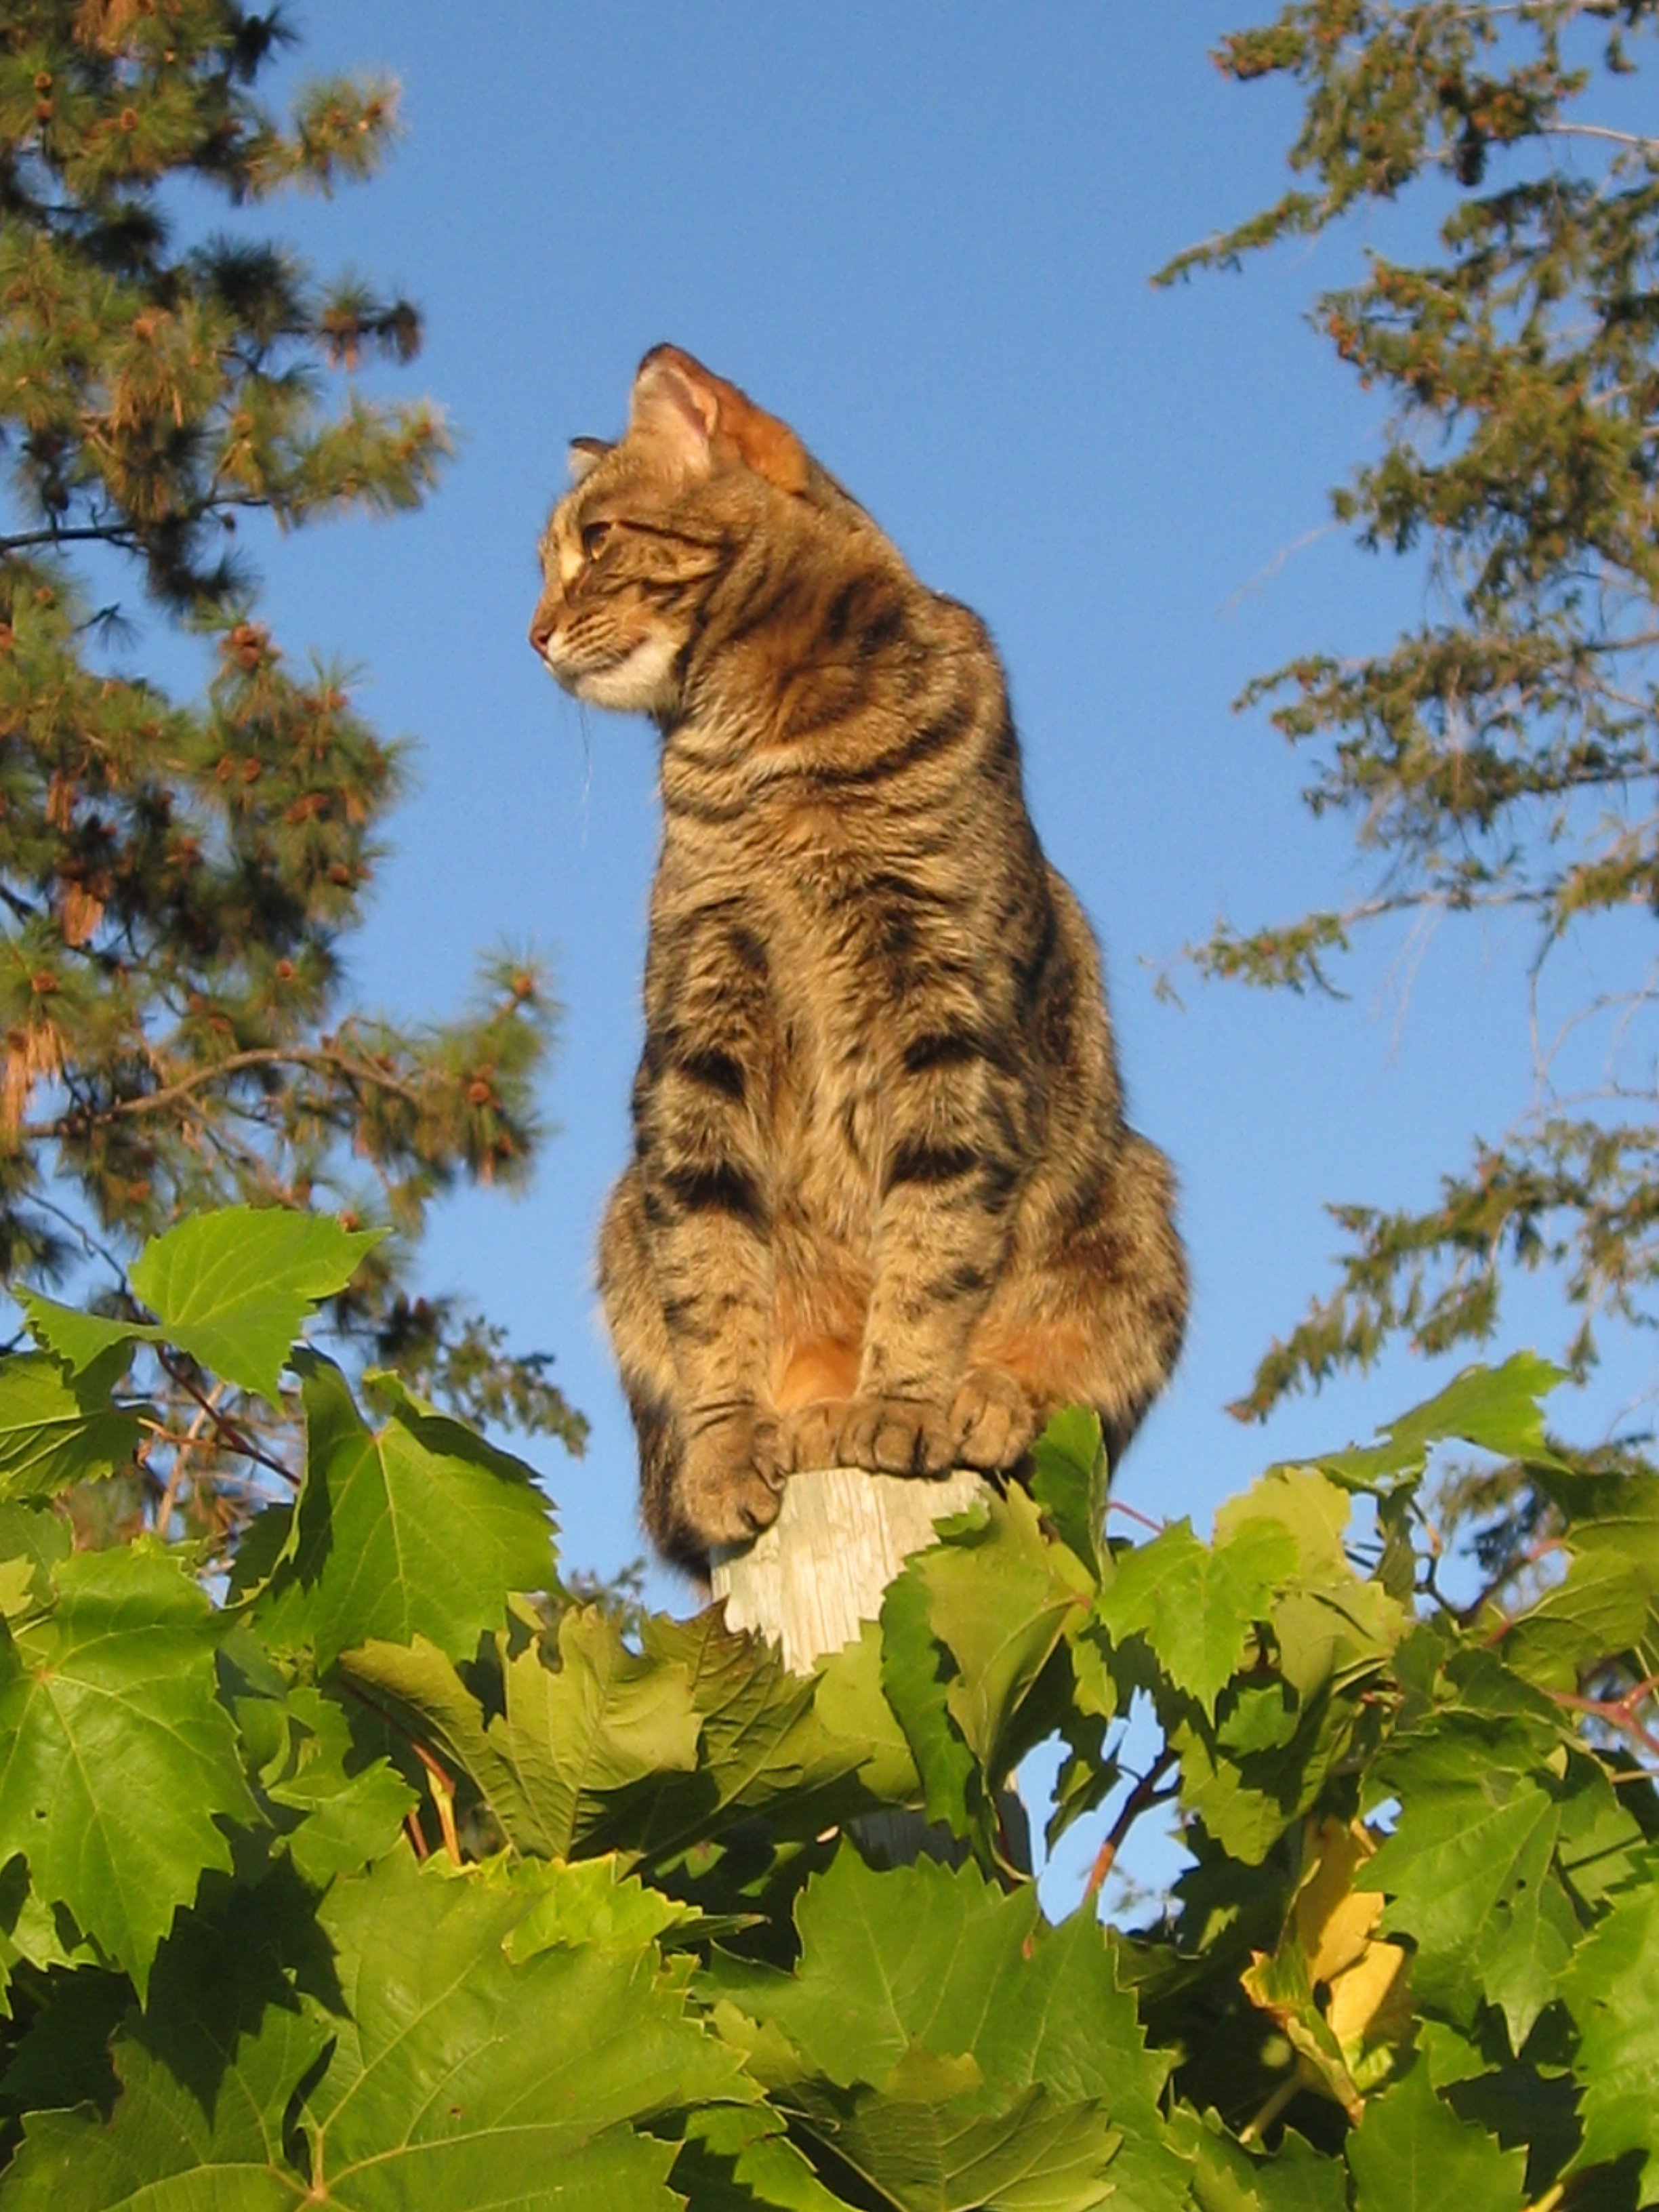 https://0901.nccdn.net/4_2/000/000/002/376/September-the-St-Hubertus---Oak-Bay-Vineyard-Cat.JPG